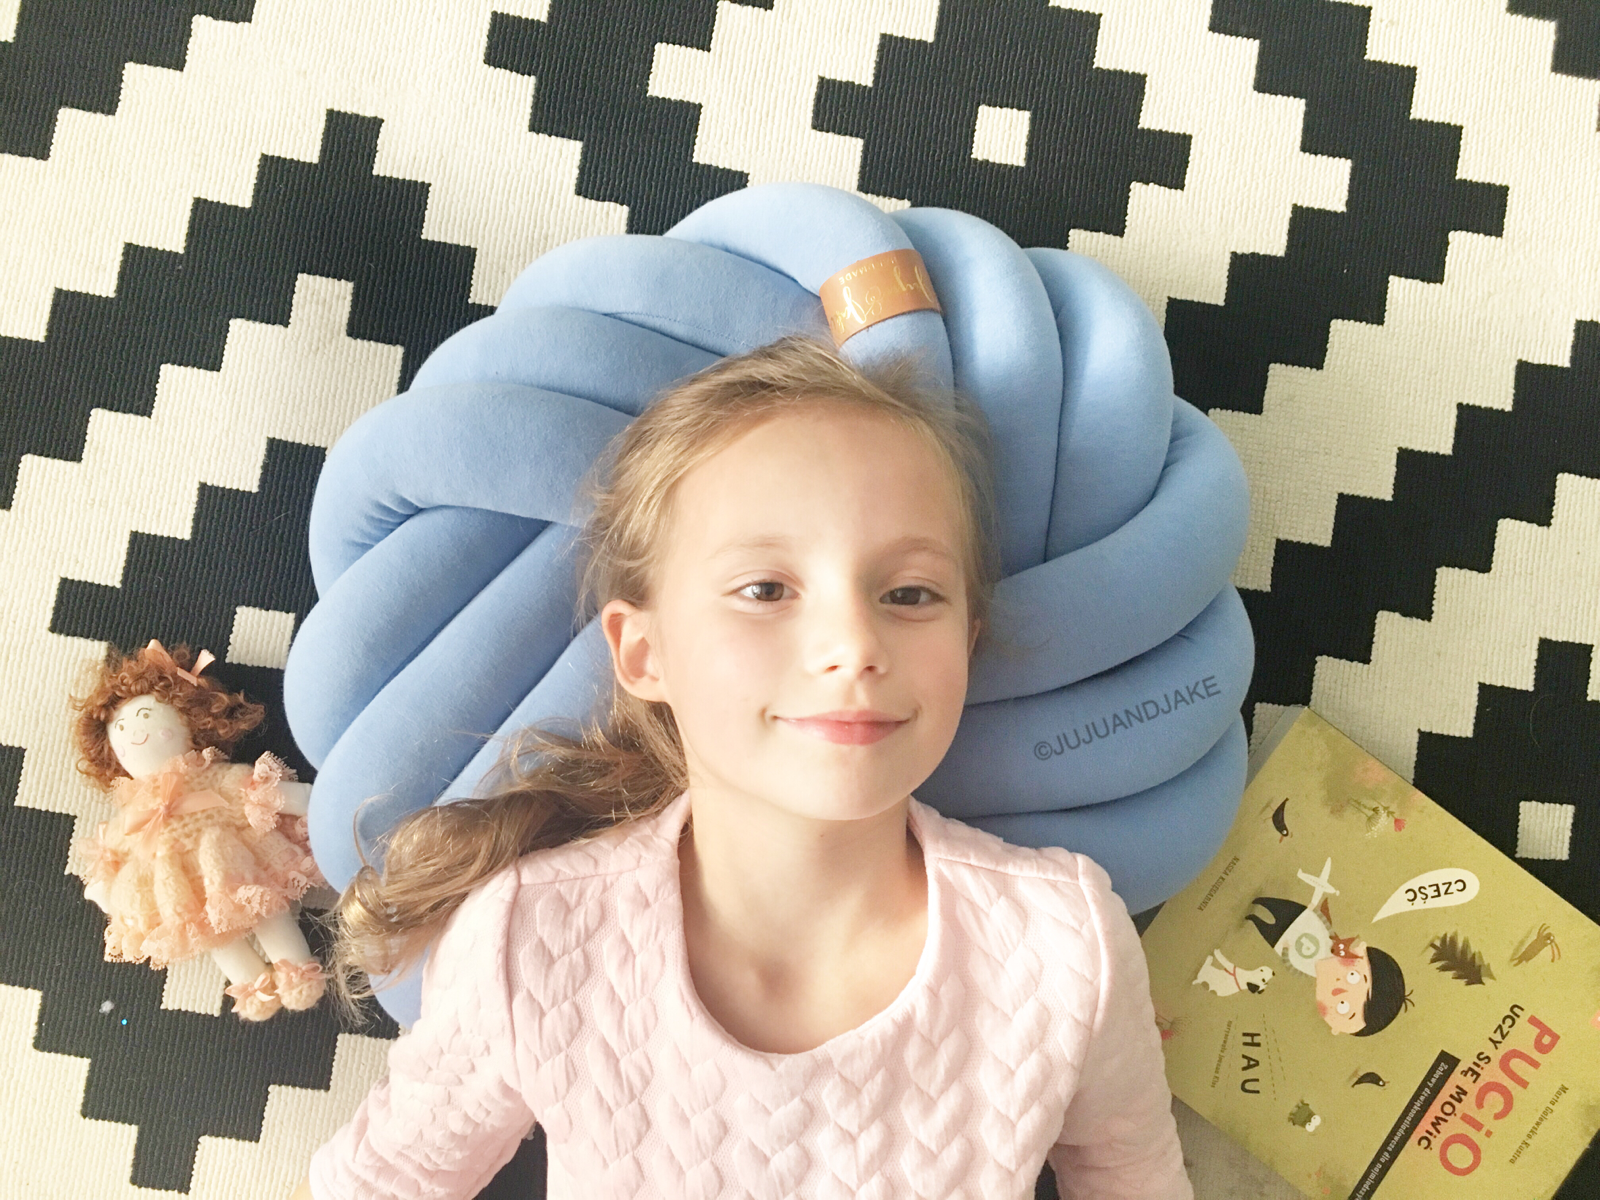 Denim | Blue Kids Floor Knot Cushion / Floor Pillow - See more Knot Pillows & Cushions at JujuAndJake.com